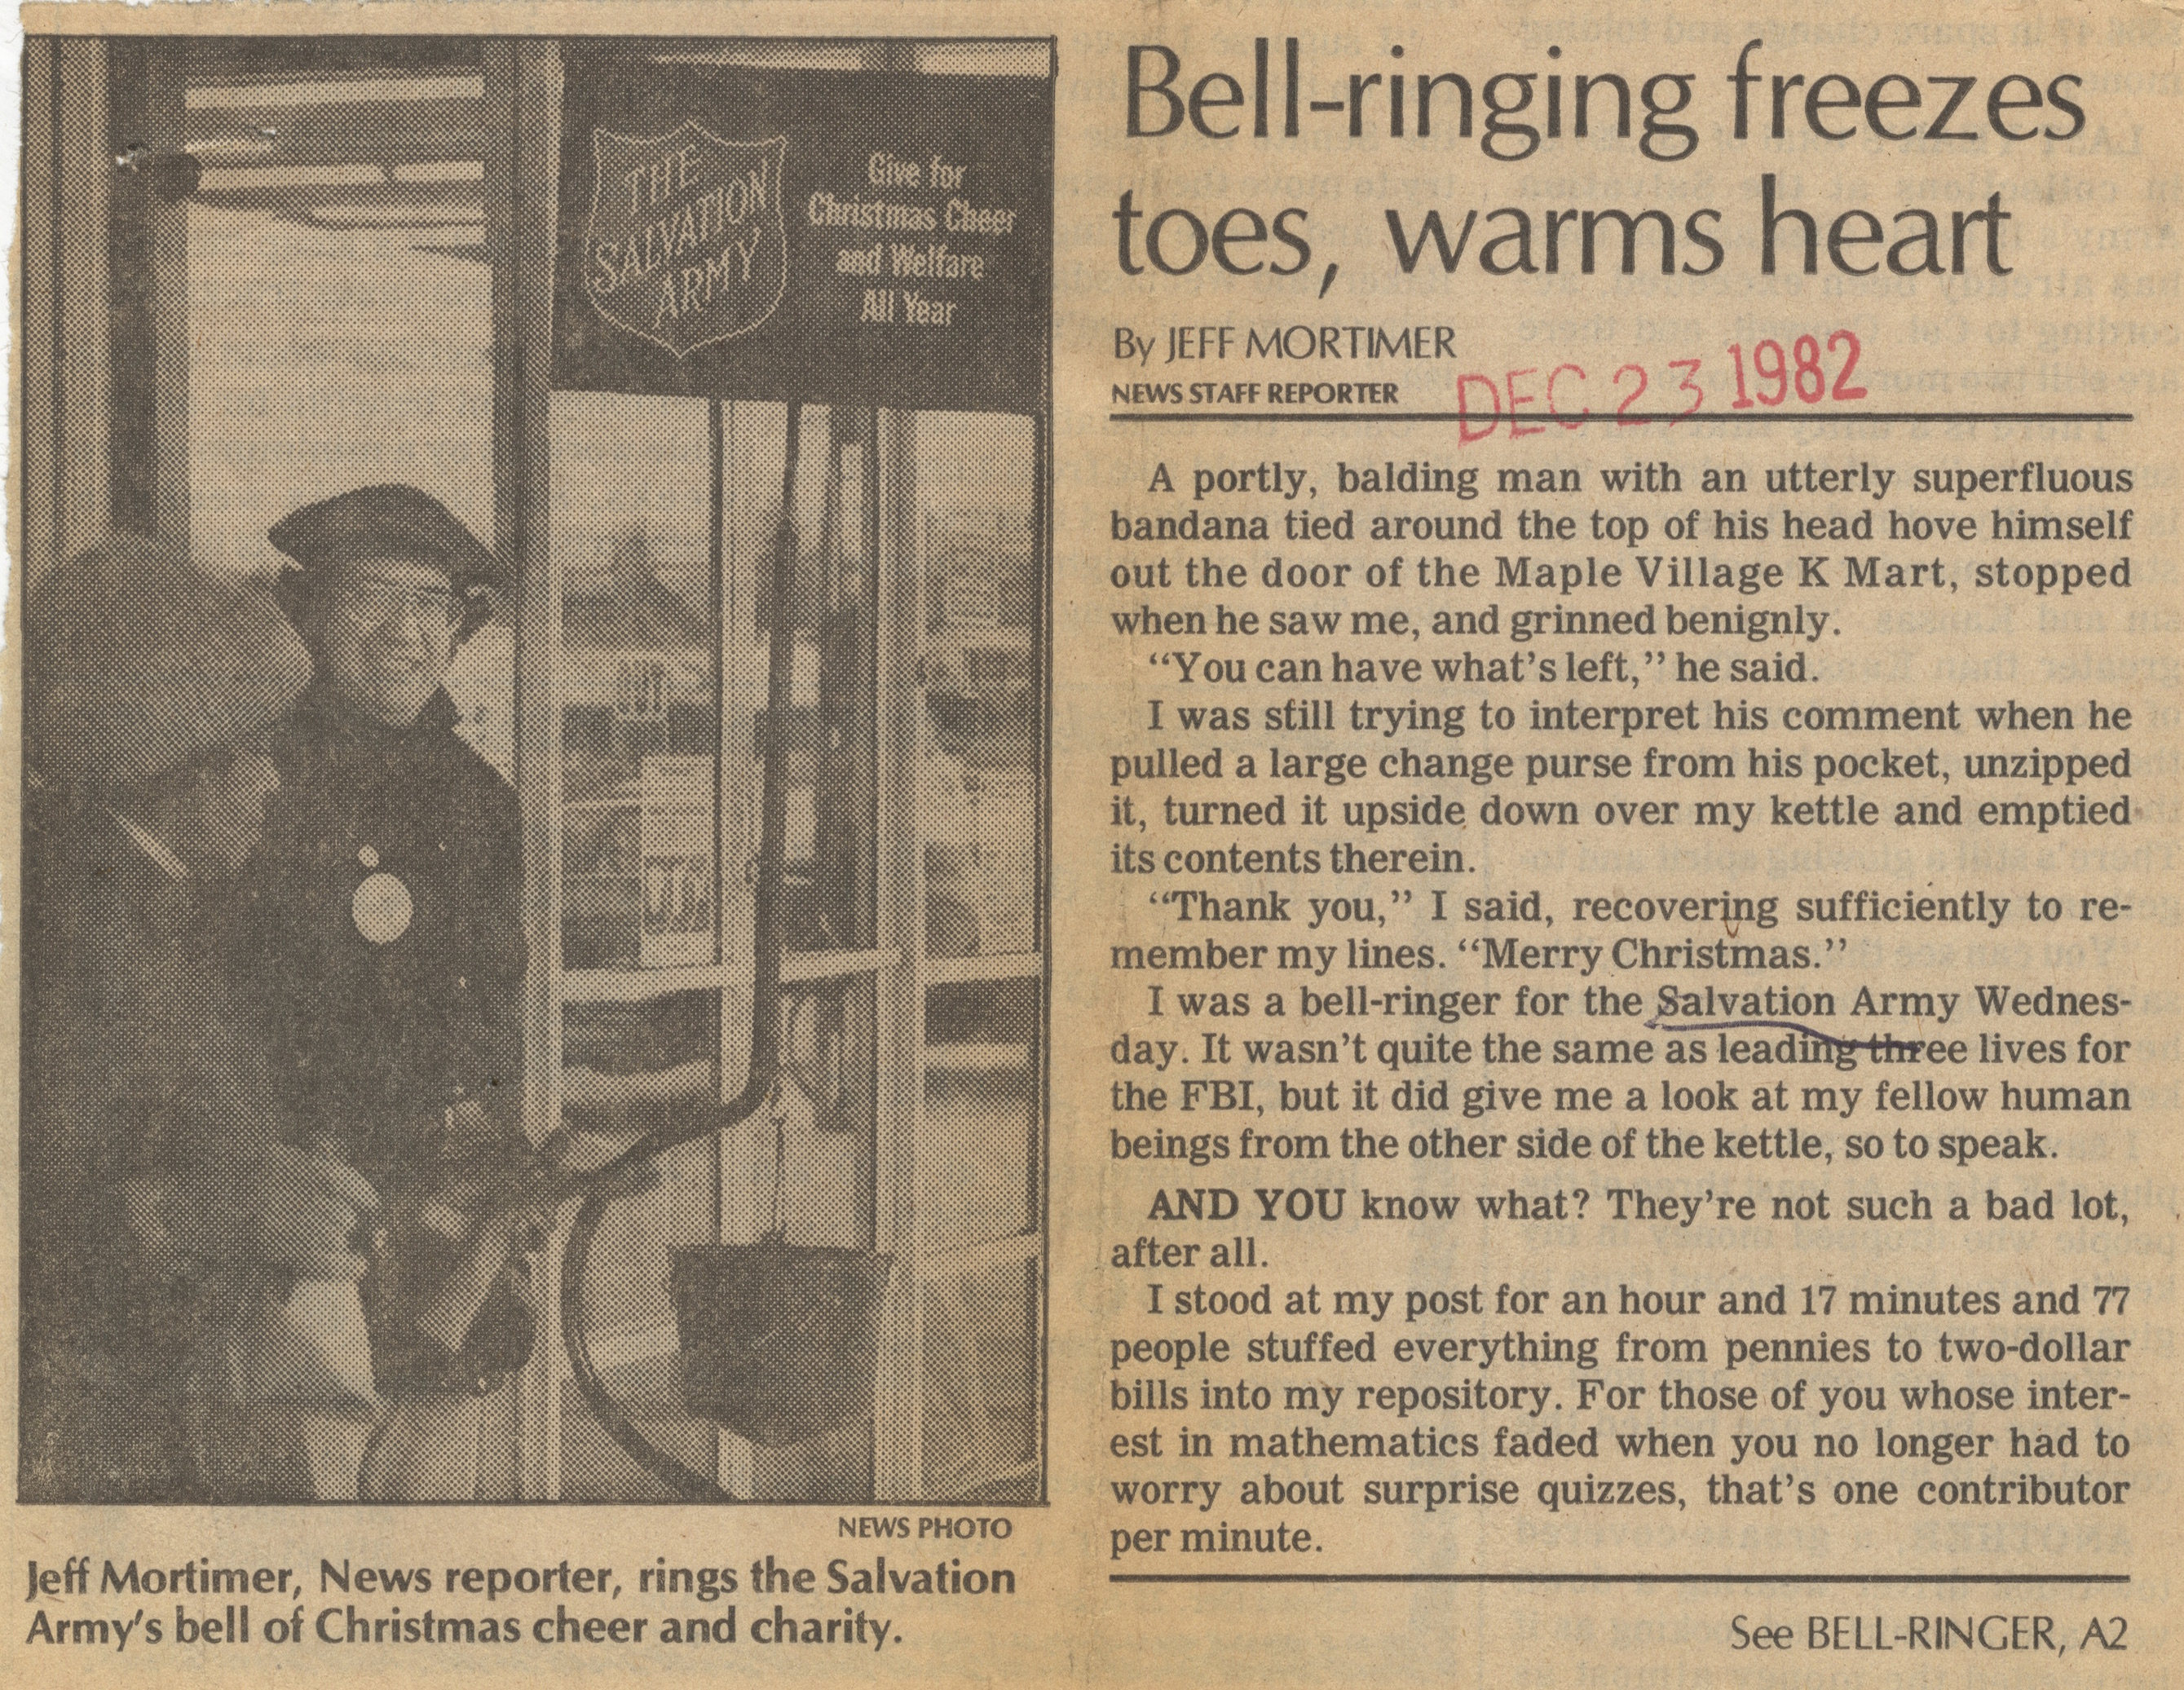 Bell-Ringing Freezes Toes, Warms Heart image